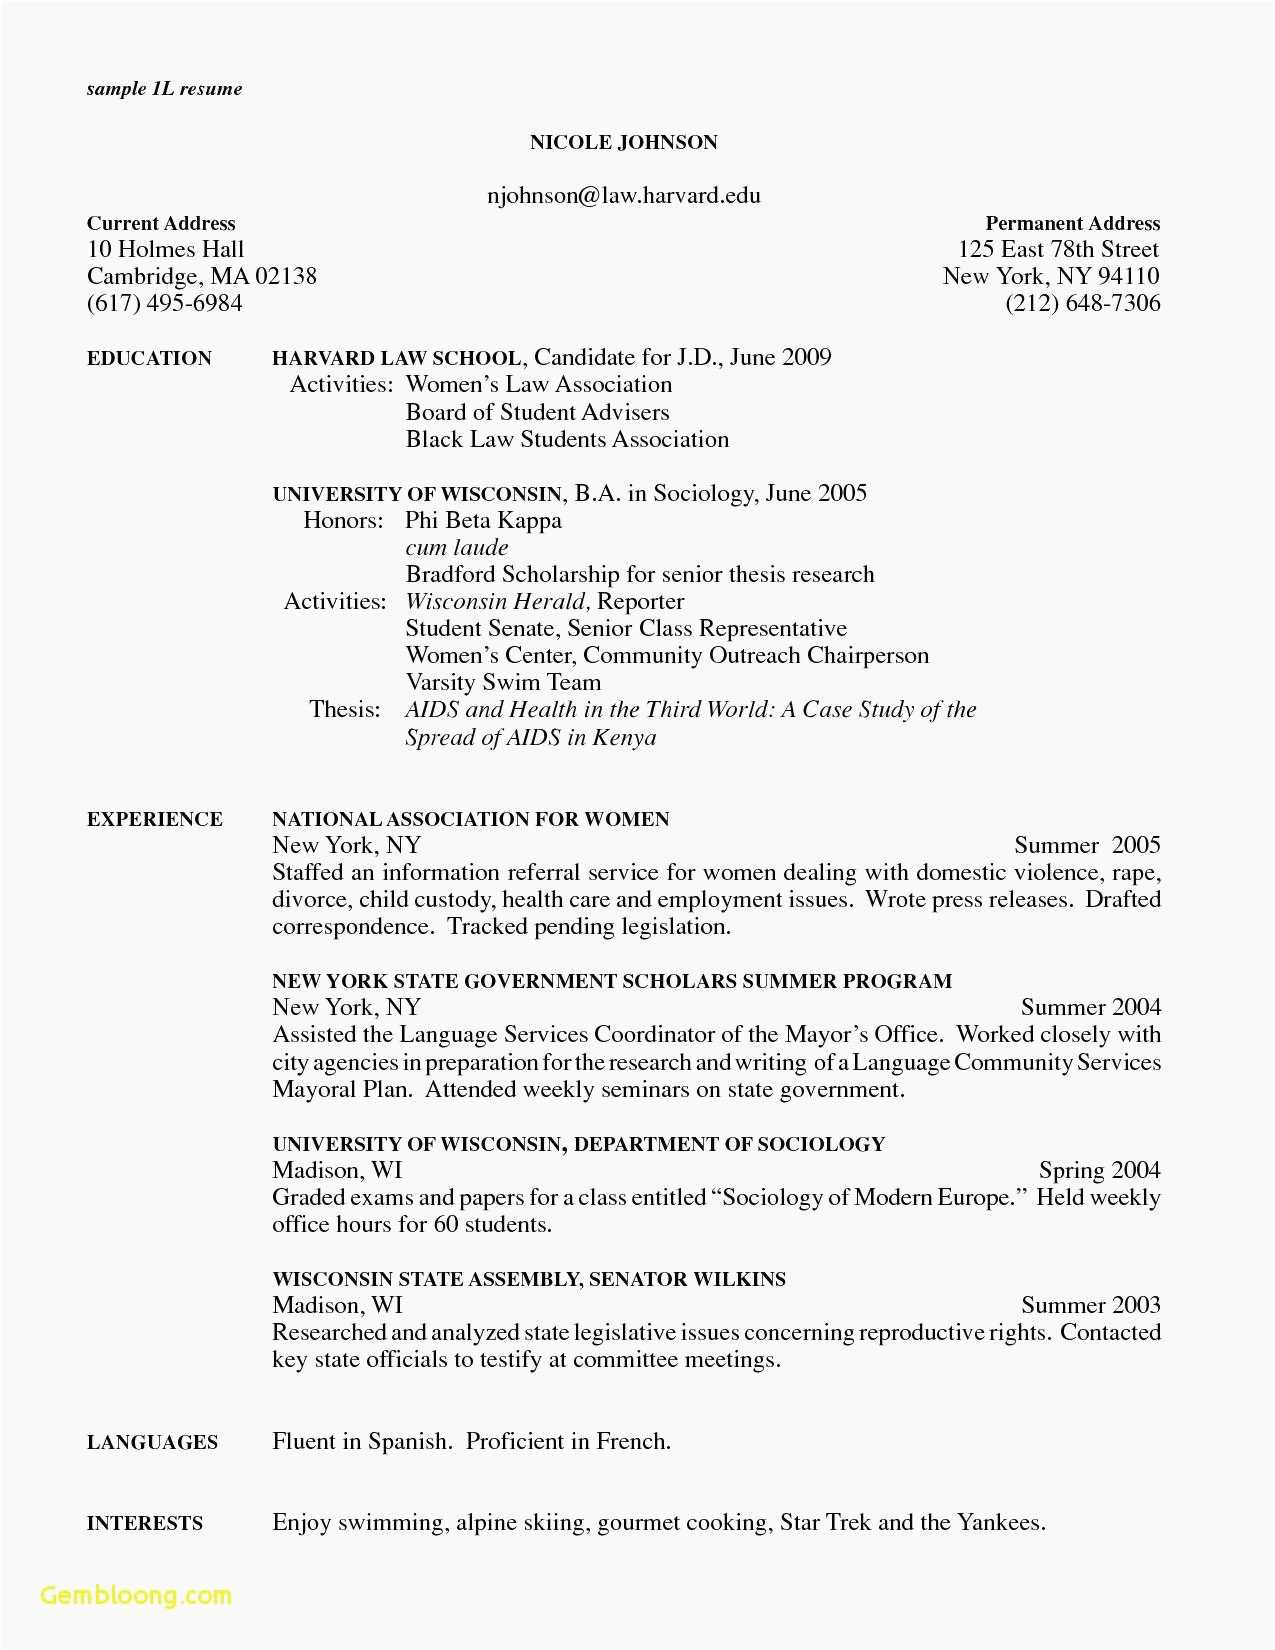 Law School Resumes - Cancellation Policy Template 2018 Legal Resume Template Best Law